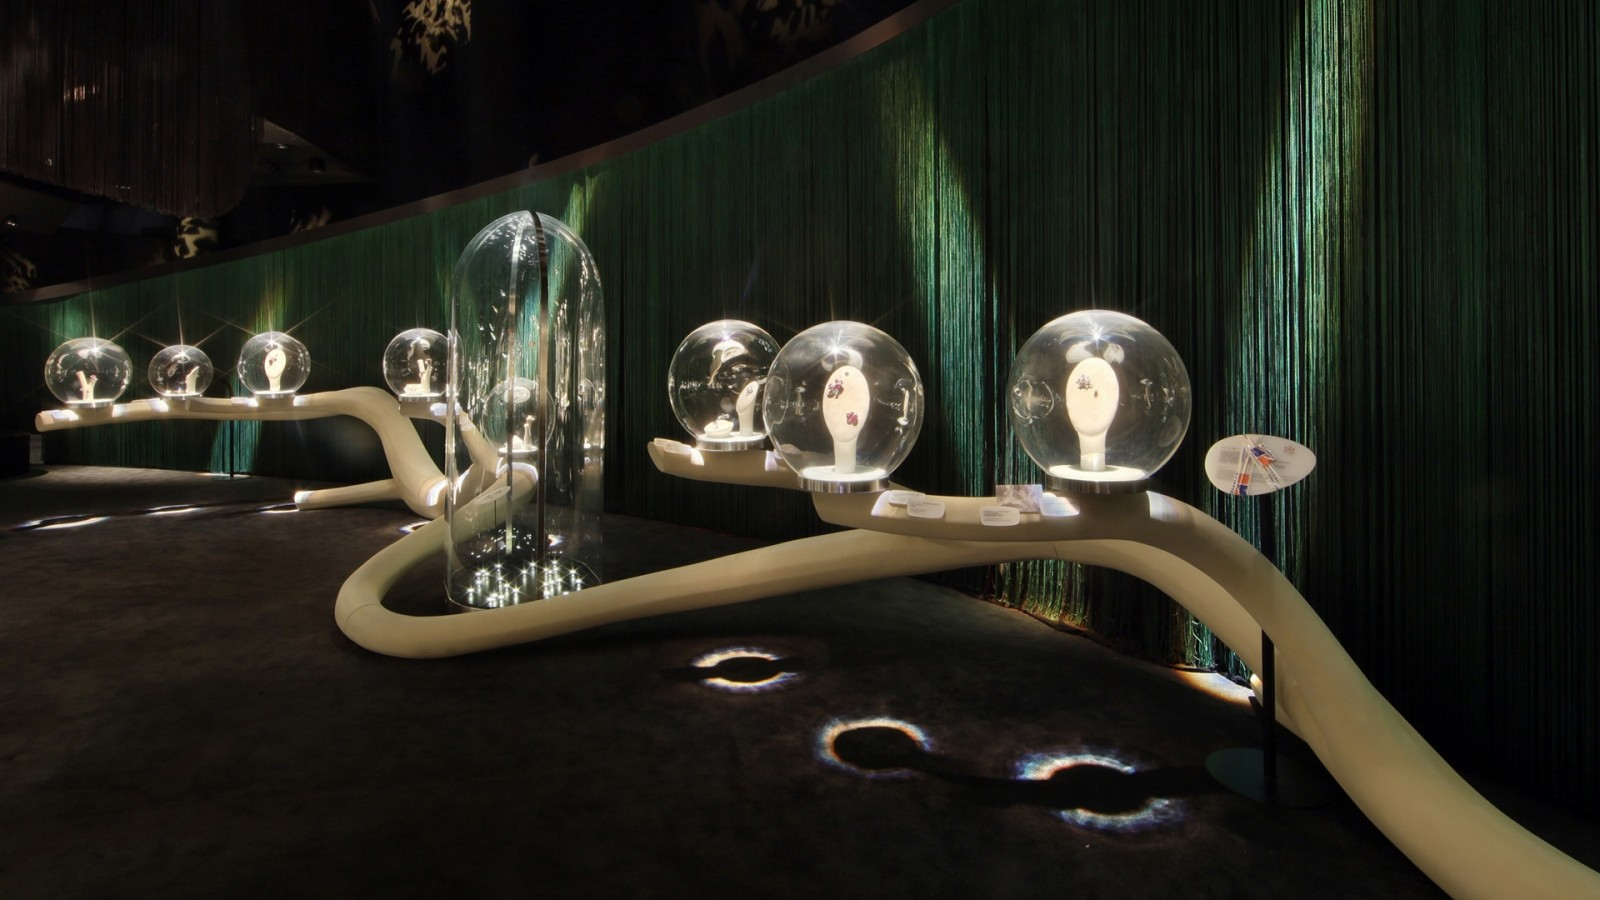 An exhibit by Van Cleef and Arpels, using unique glass bubbles to display the jewelry inside them.